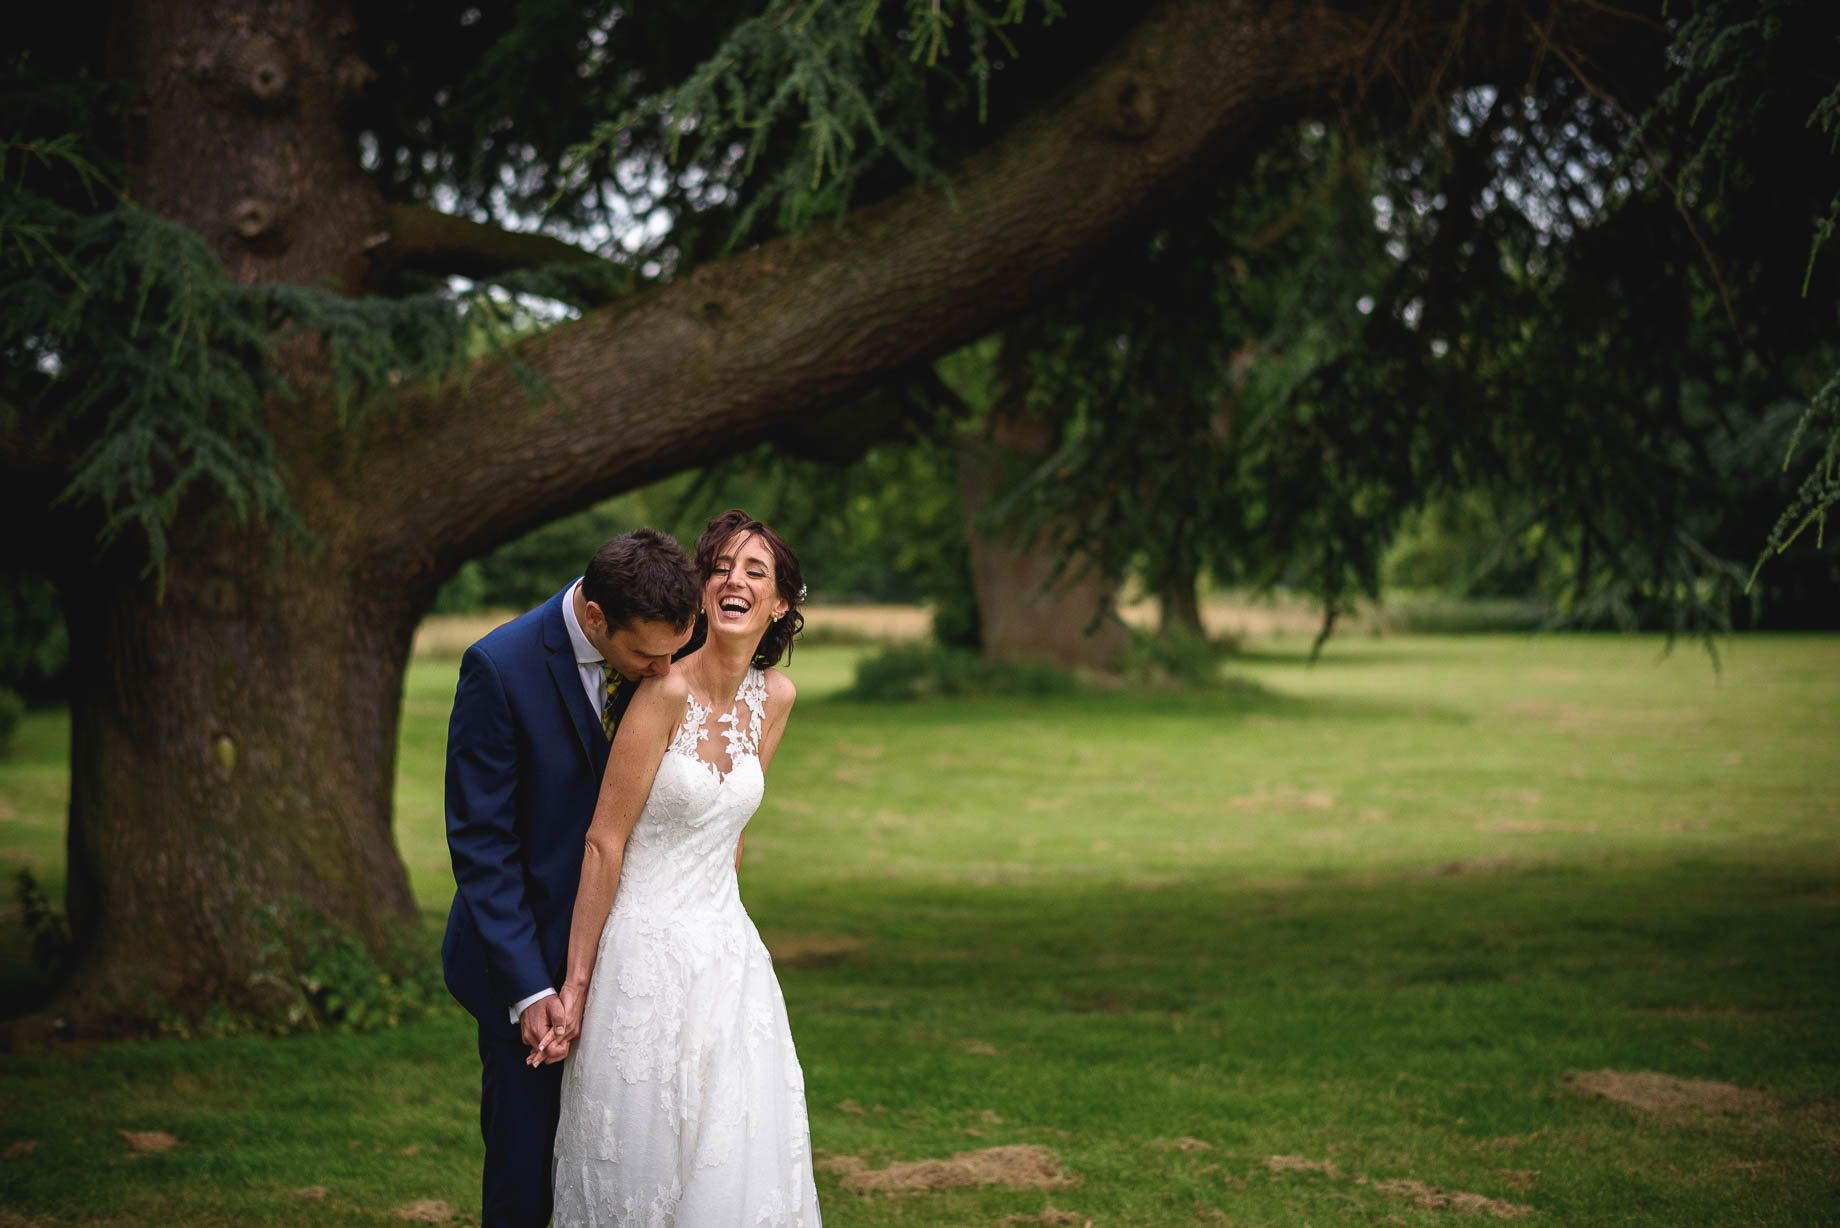 Hertfordshire wedding photography - Sarah and Stephen by Guy Collier Photography (145 of 161)